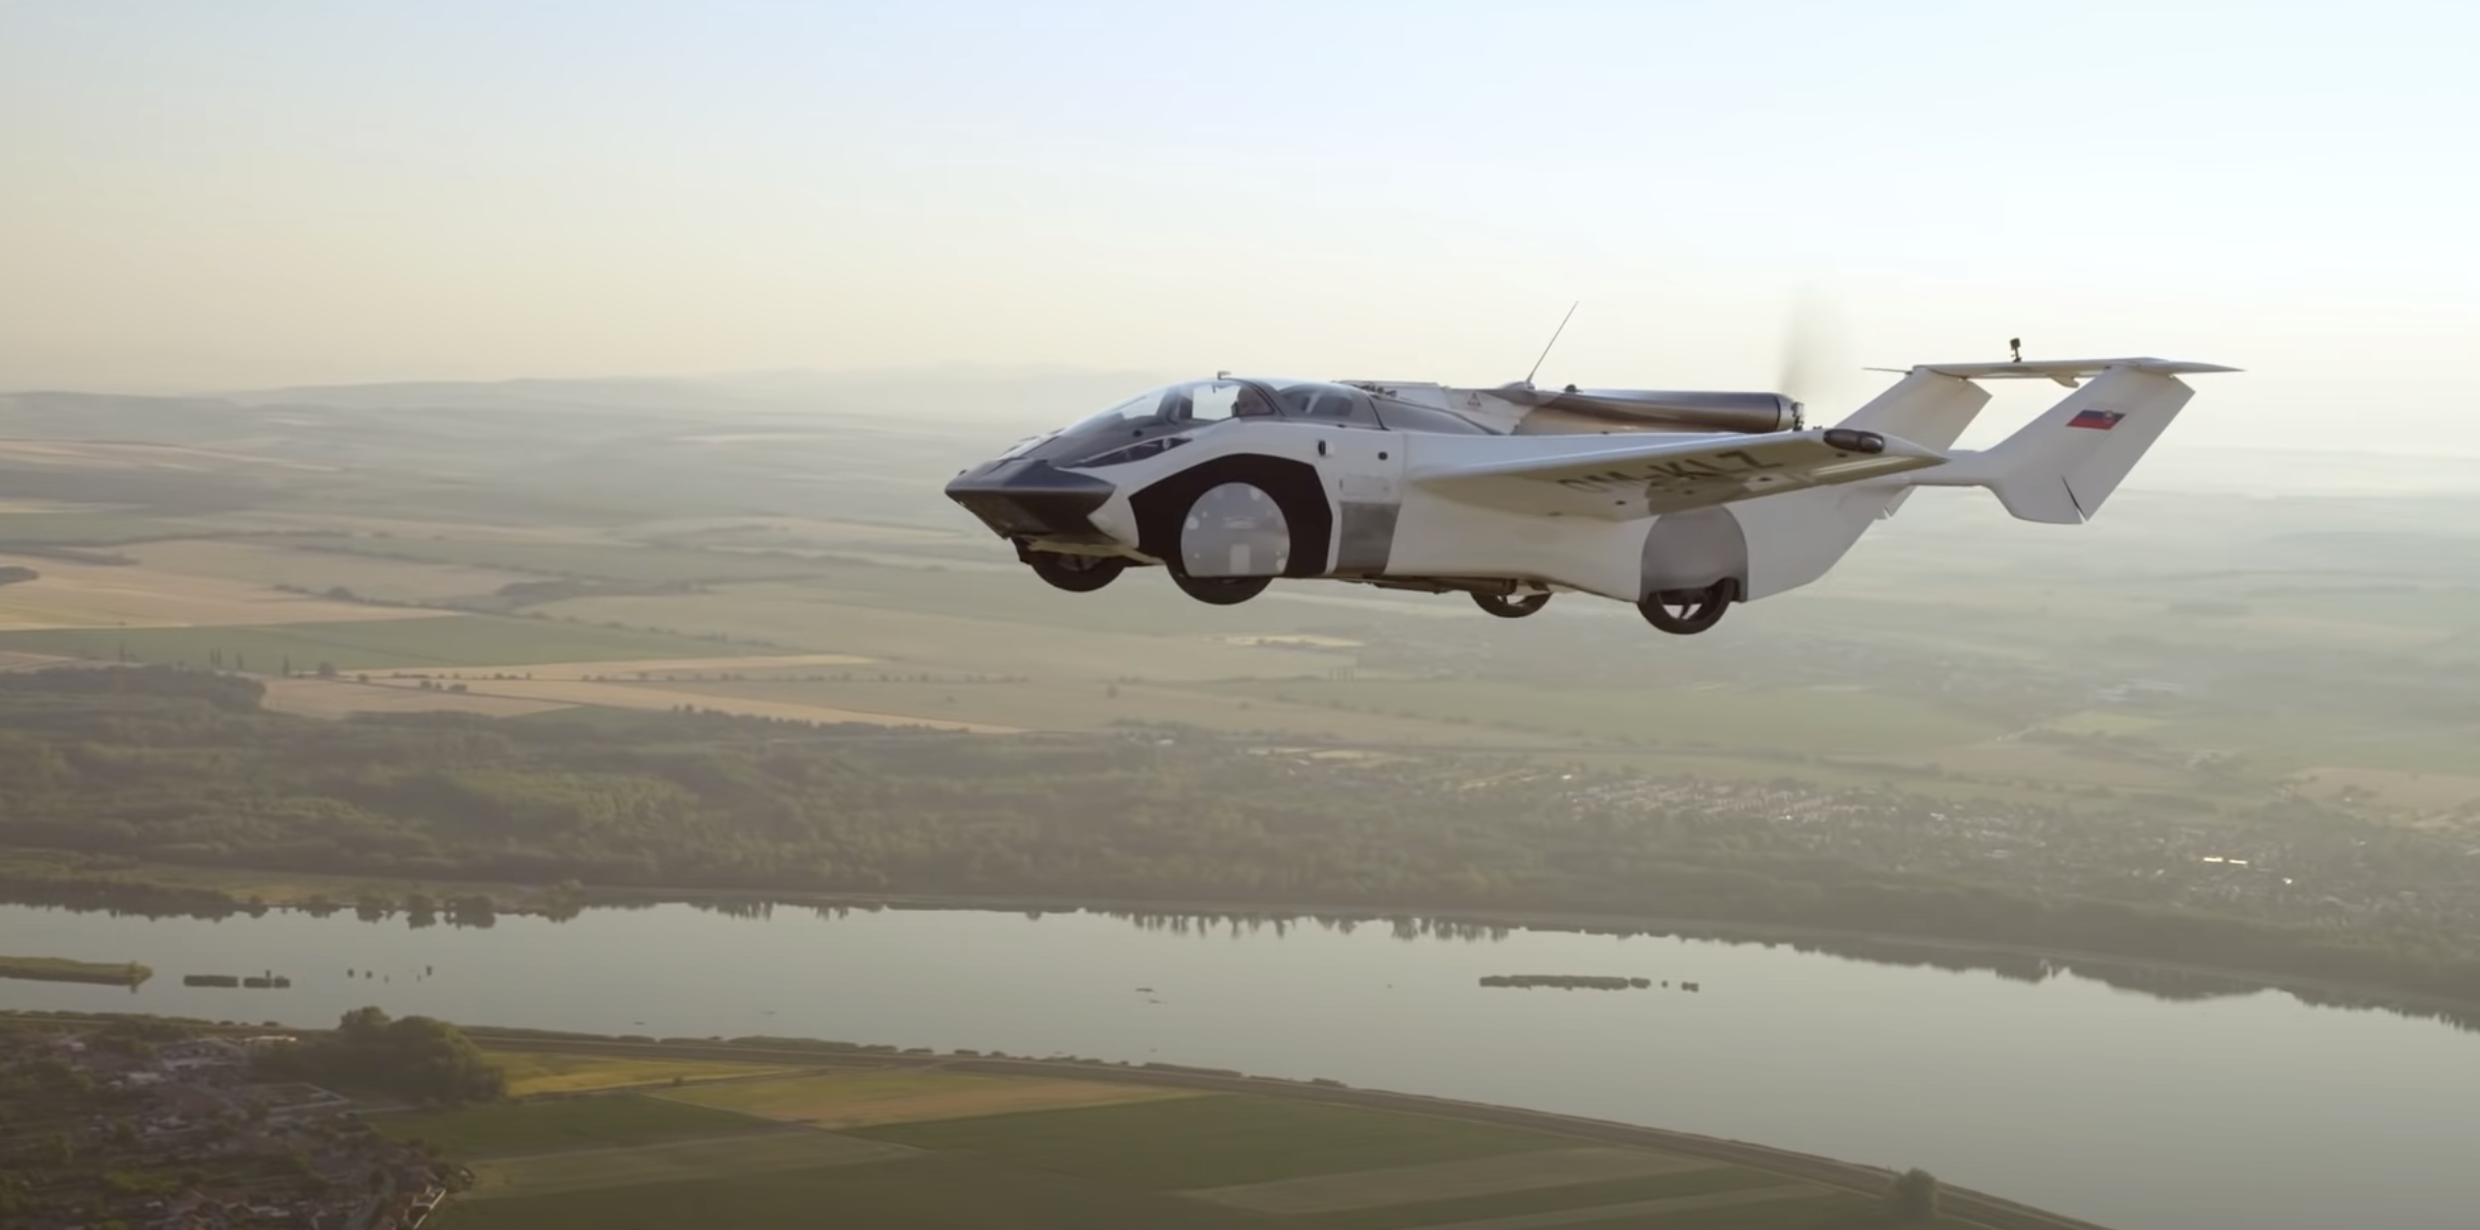 WATCH: The flying car completes first ever inter-city flight